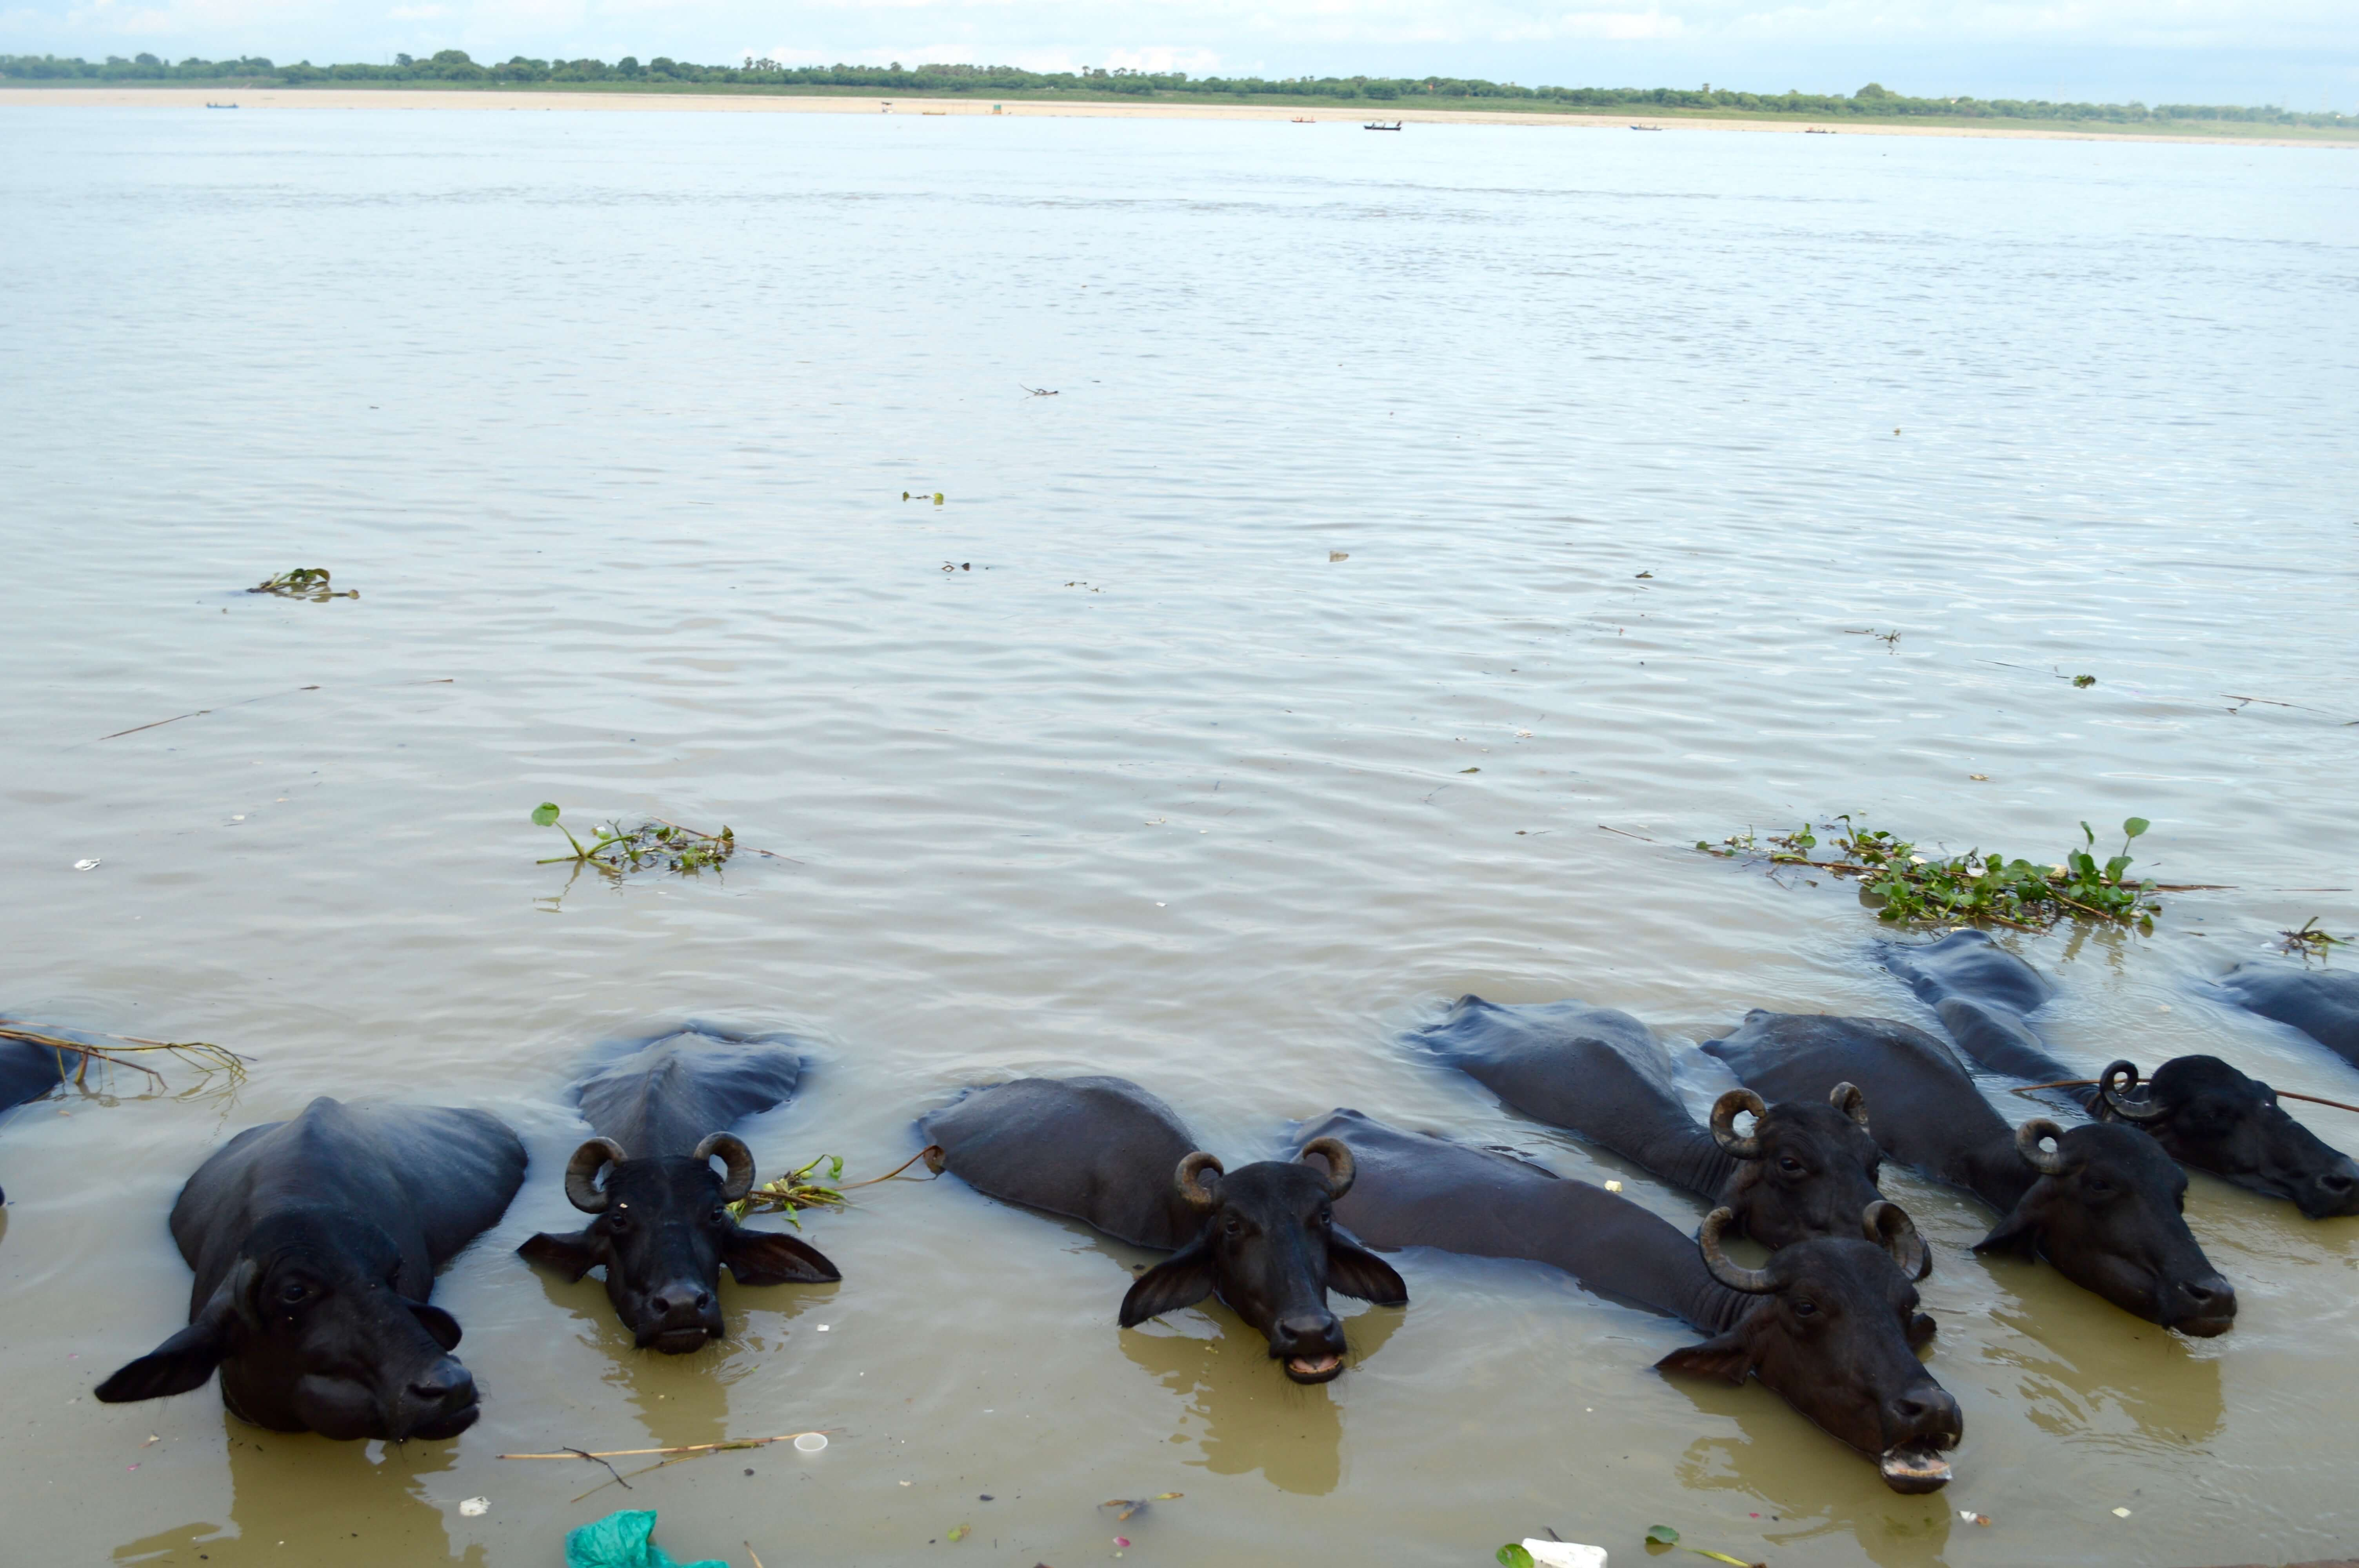 A line of water buffalo relaxing in the water of the Ganges River